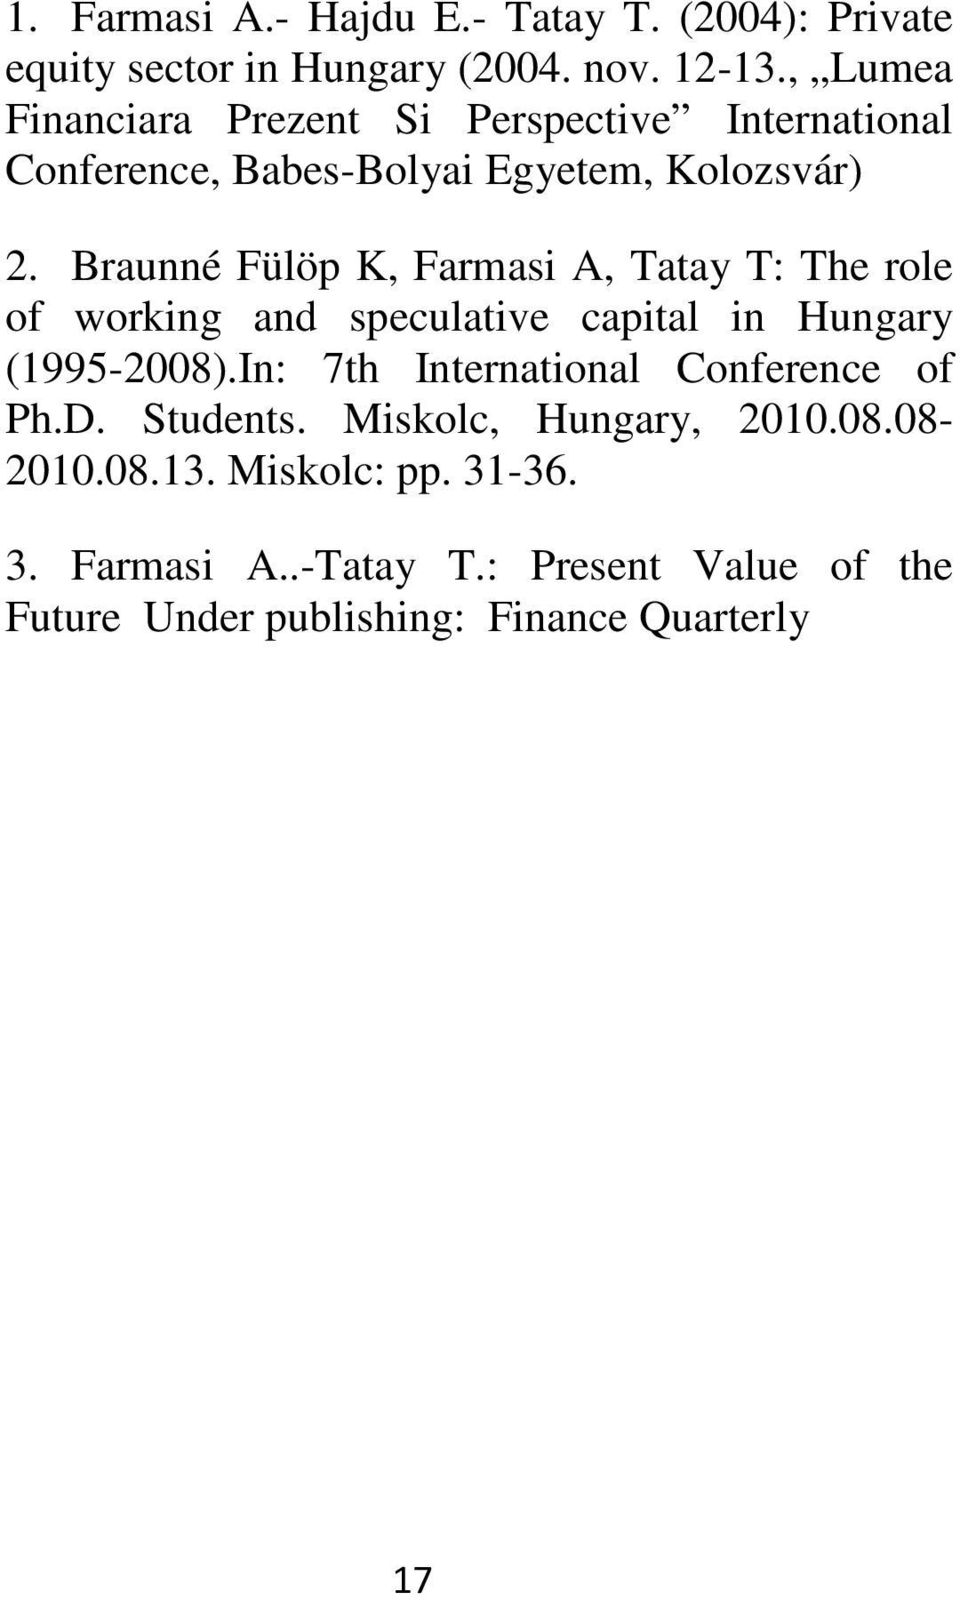 Braunné Fülöp K, Farmasi A, Tatay T: The role of working and speculative capital in Hungary (1995-2008).